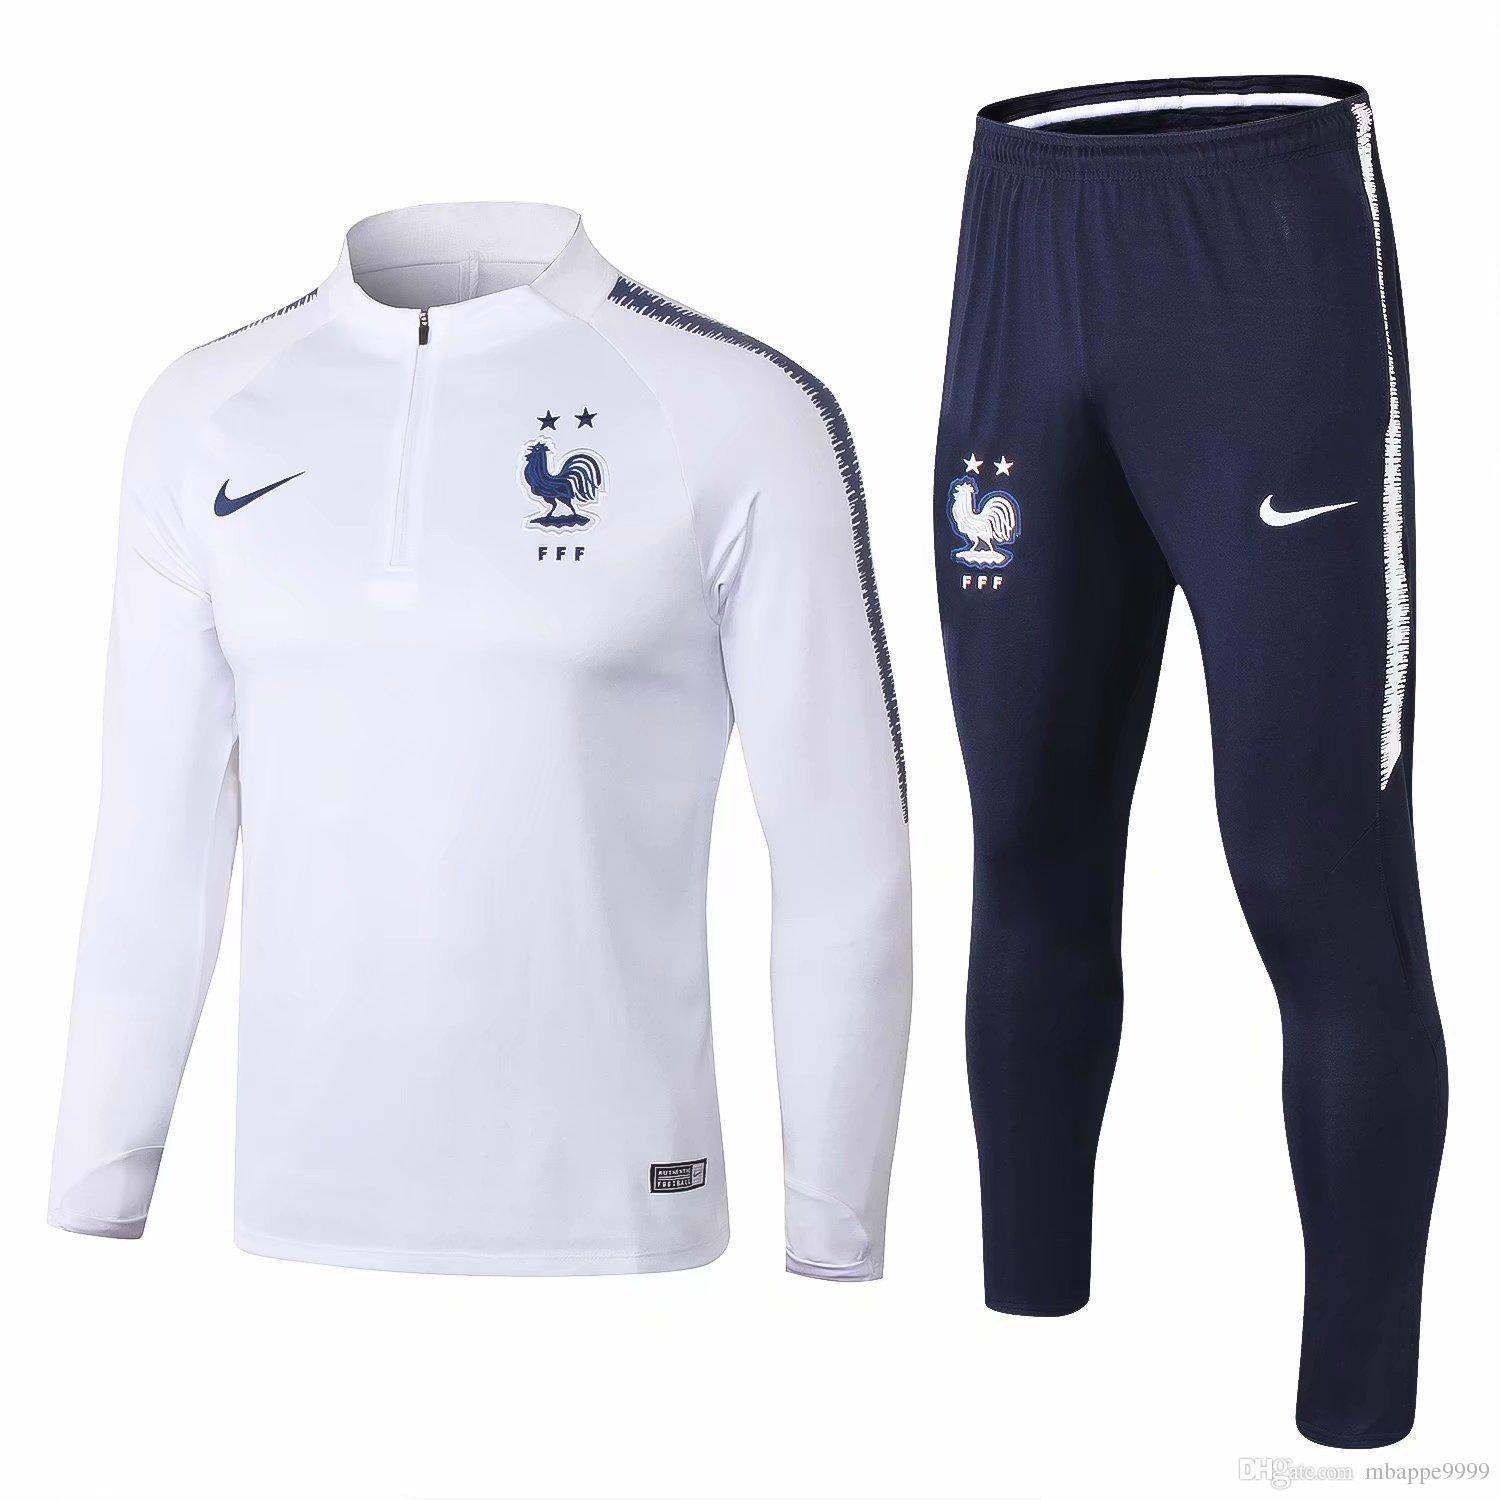 6c99433e2c2 US  34.8 - France FIFA World Cup 2018 Training Suit White - 2-Star -  www.fcsoccerworld.com (1500x1500) ...